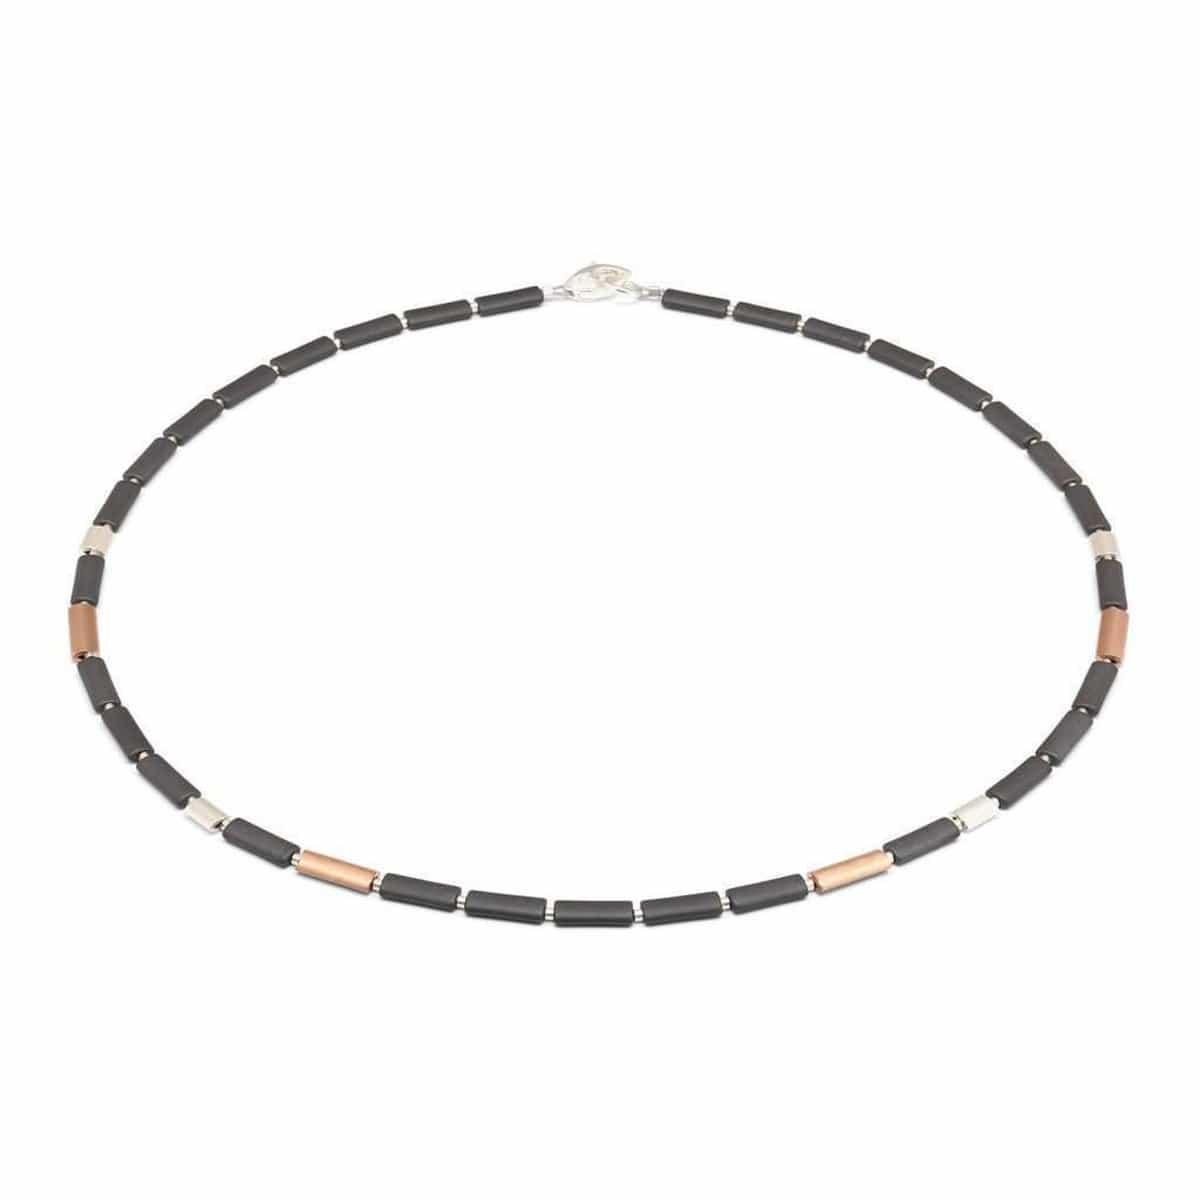 Ovalsa Hematine Necklace - 85738275